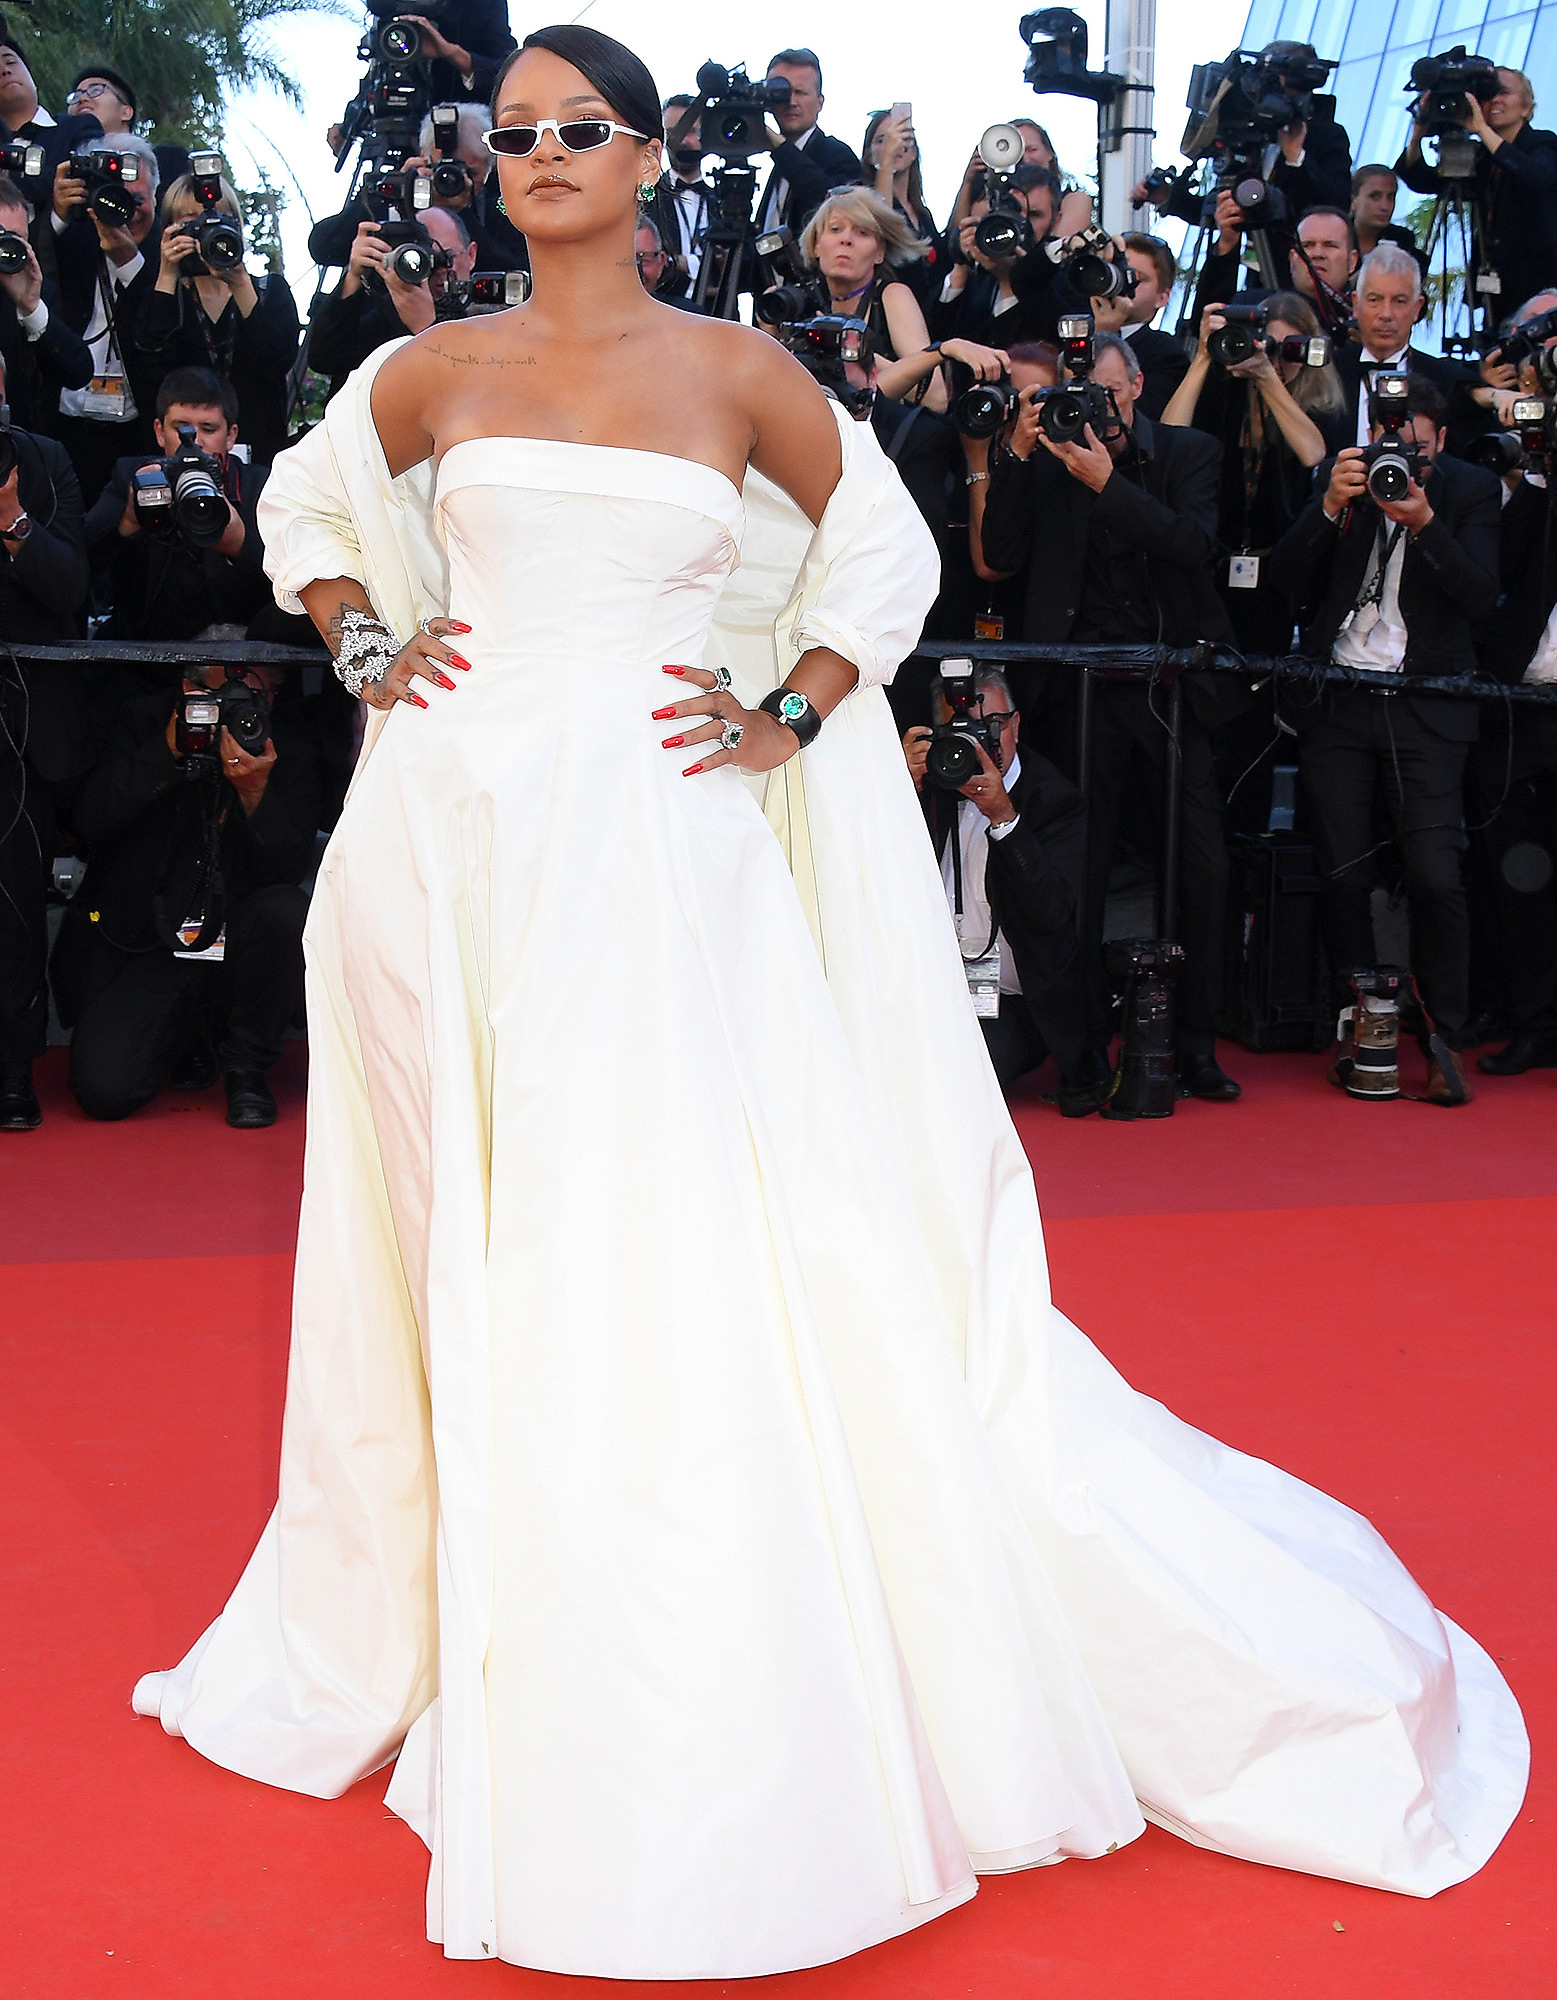 """CANNES, FRANCE - MAY 19:  Rihanna attends the """"Okja"""" screening during the 70th annual Cannes Film Festival at Palais des Festivals on May 19, 2017 in Cannes, France.  (Photo by Dominique Charriau/WireImage)"""